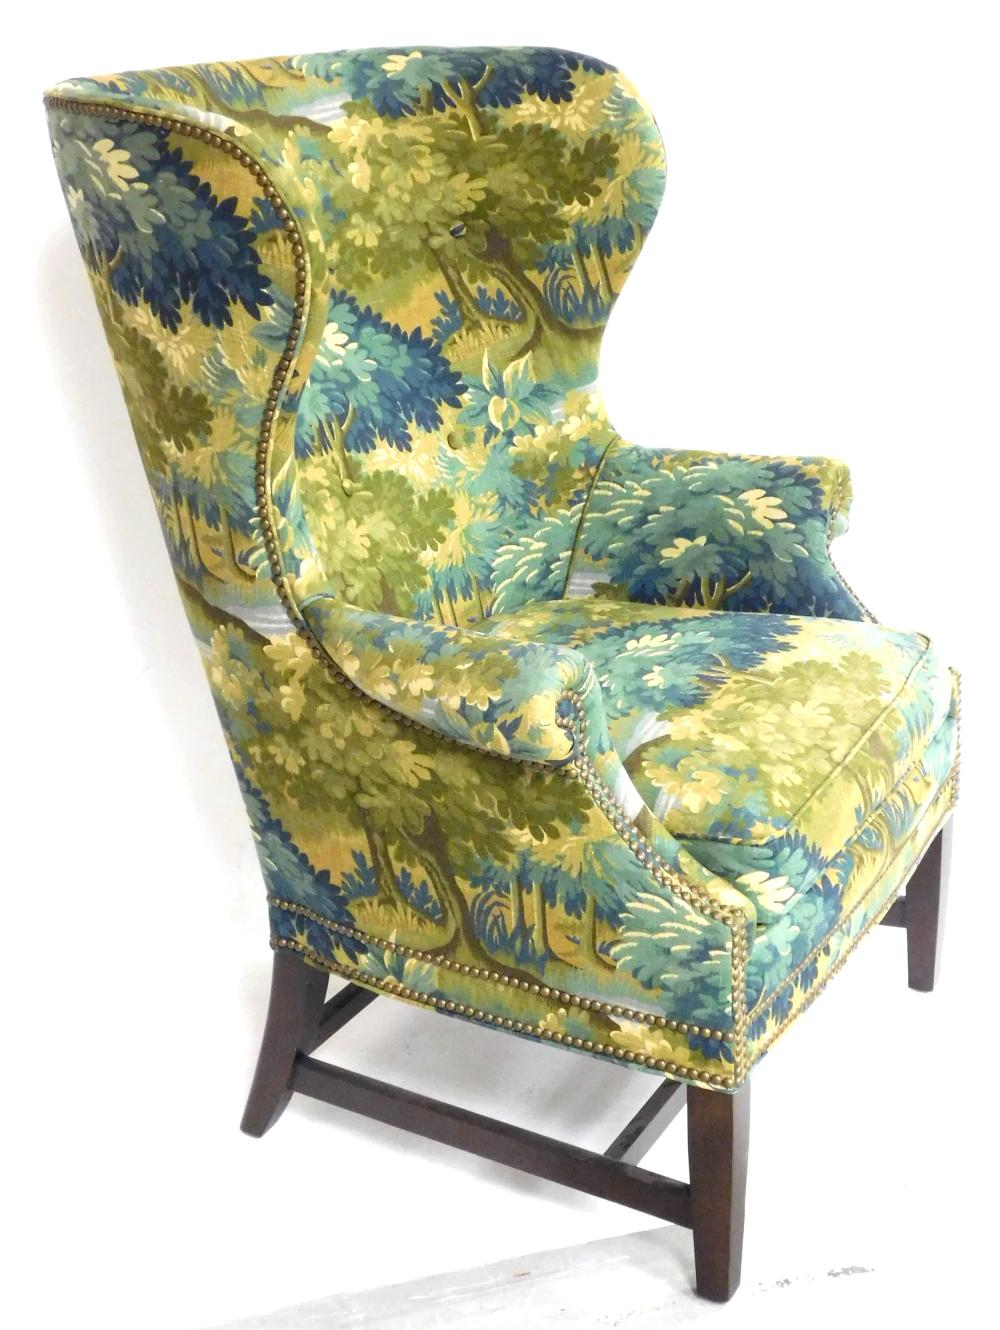 Wing chair by Wesley Hall, Hickory, N.C., late 20th C., blue, green and tan landscape upholstery, barrel back with tufted buttons, r...